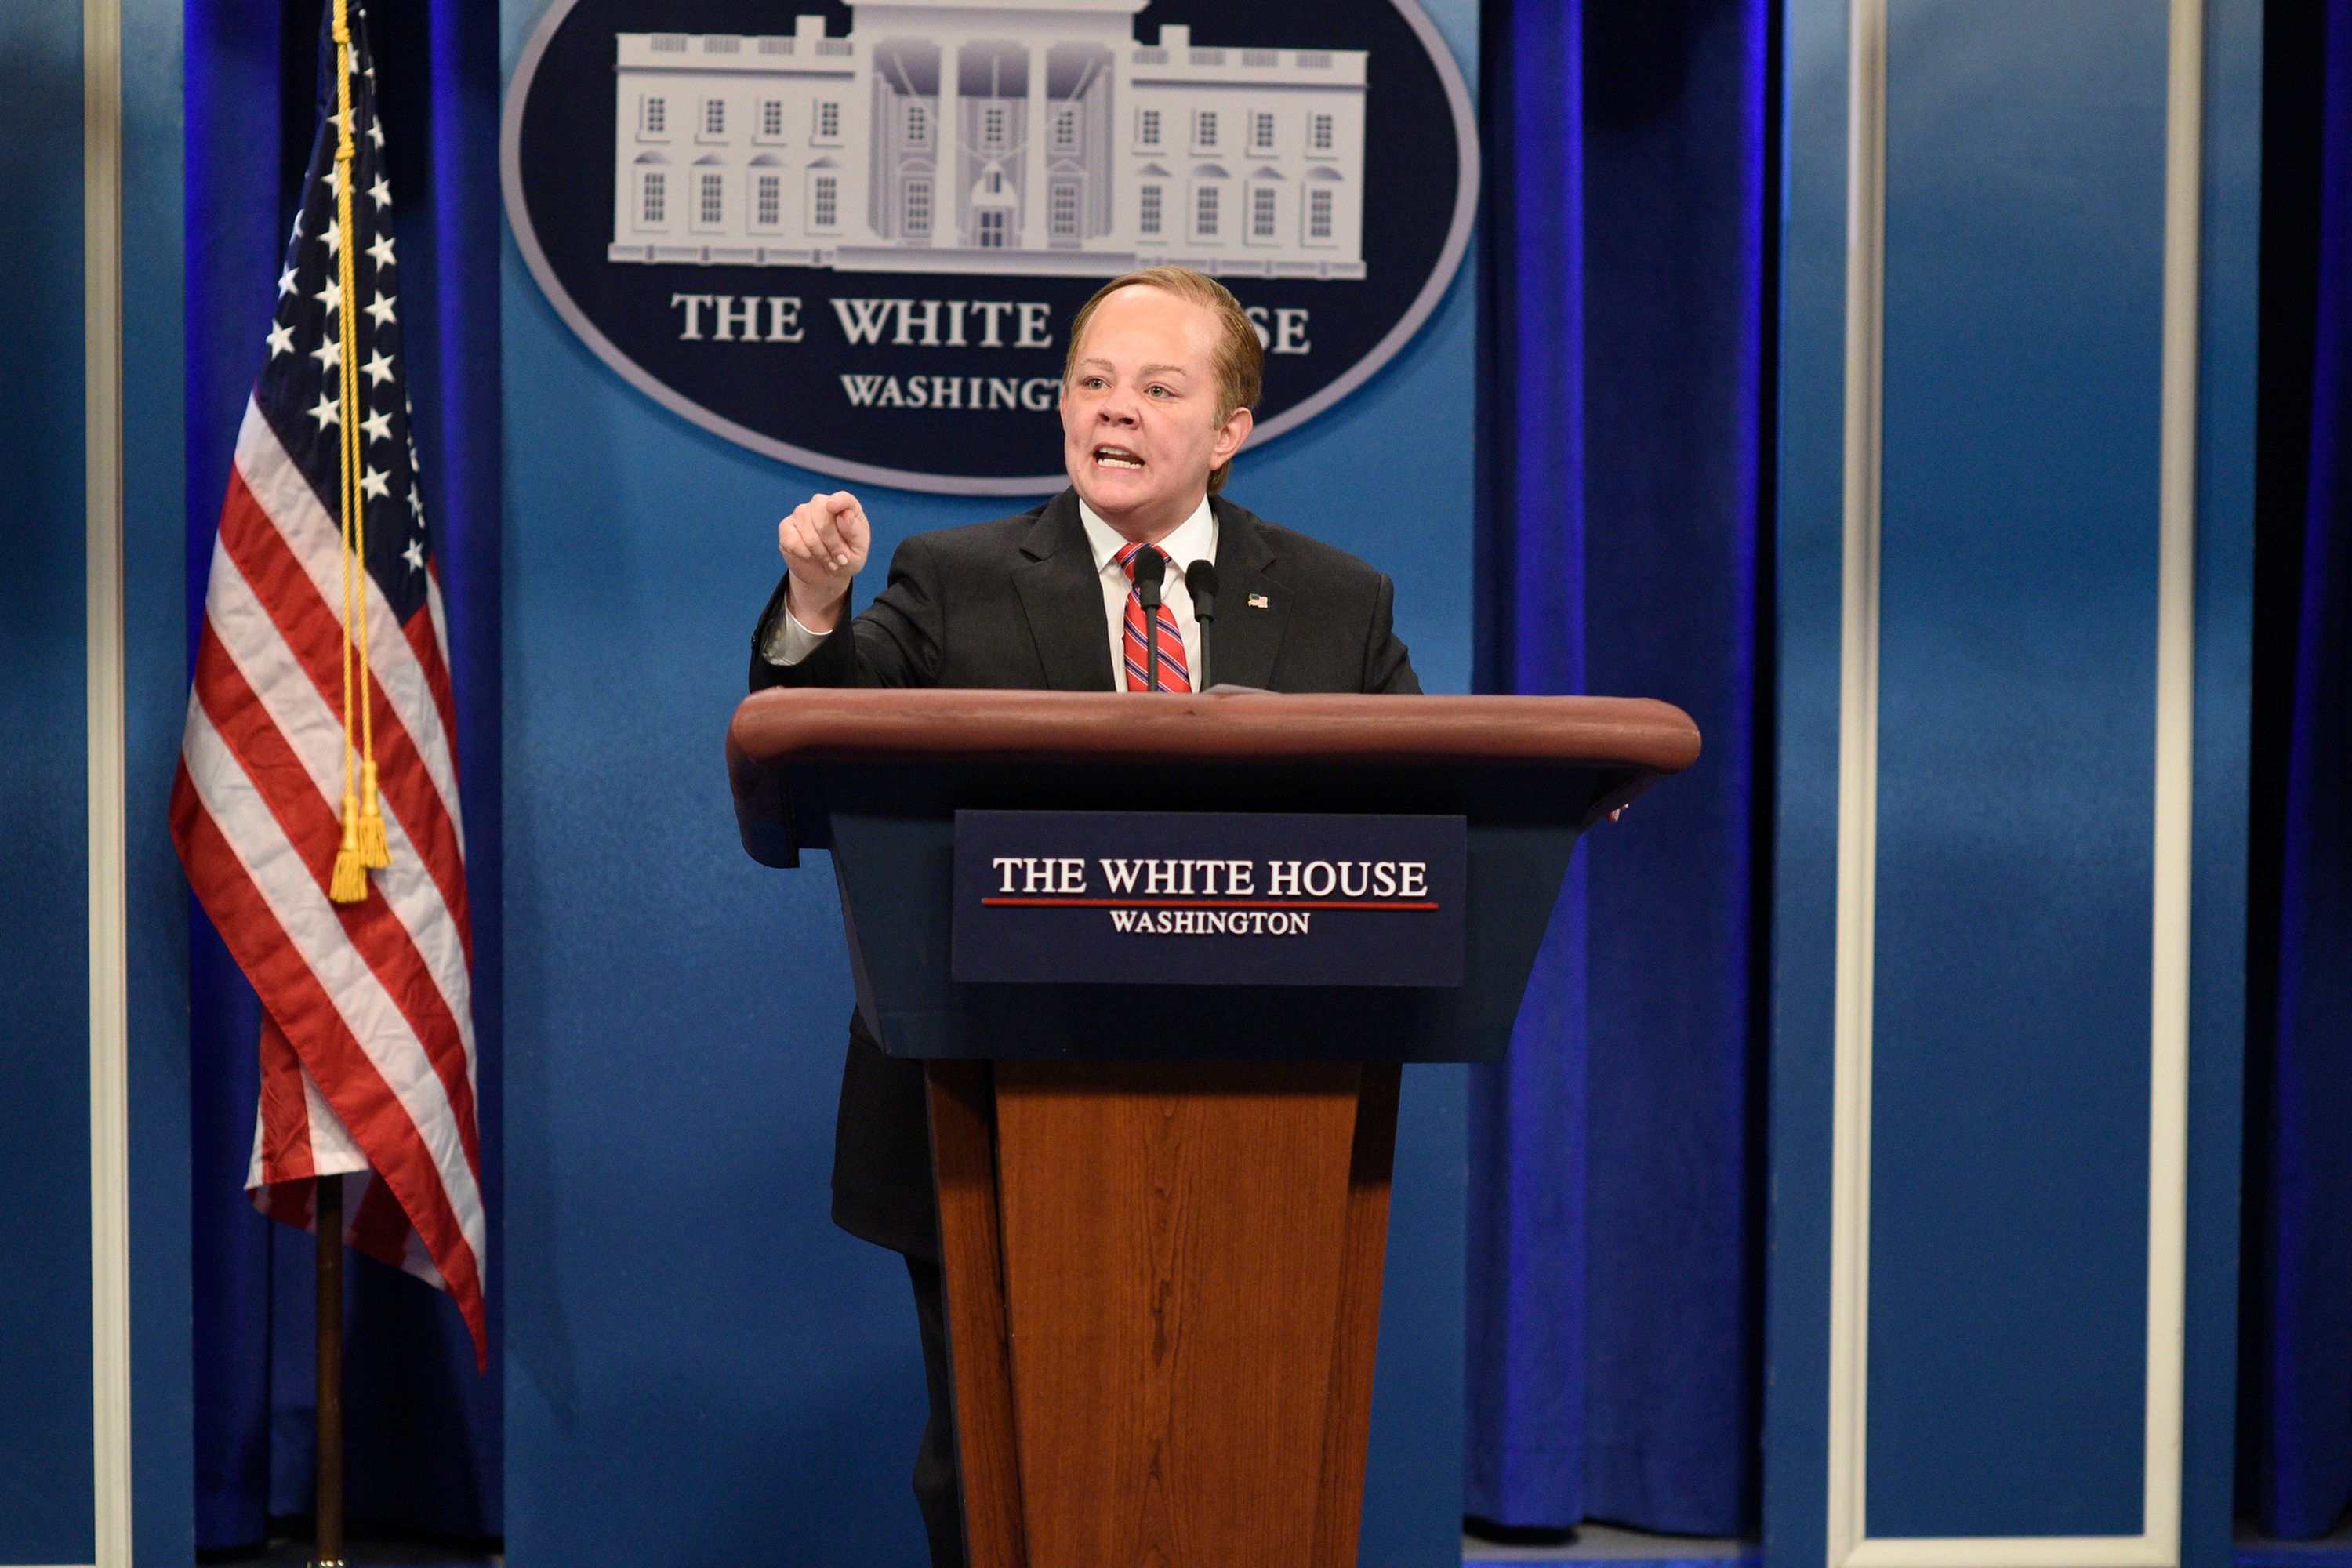 SATURDAY NIGHT LIVE -- 'Melissa McCarthy' Episode 1724 -- Pictured: Melissa McCarthy as White House Press Secretary Sean Spicer during 'Spicer Returns' in Studio 8H on May 13, 2017 -- (Photo by: Will Heath/NBC/NBCU Photo Bank via Getty Images)